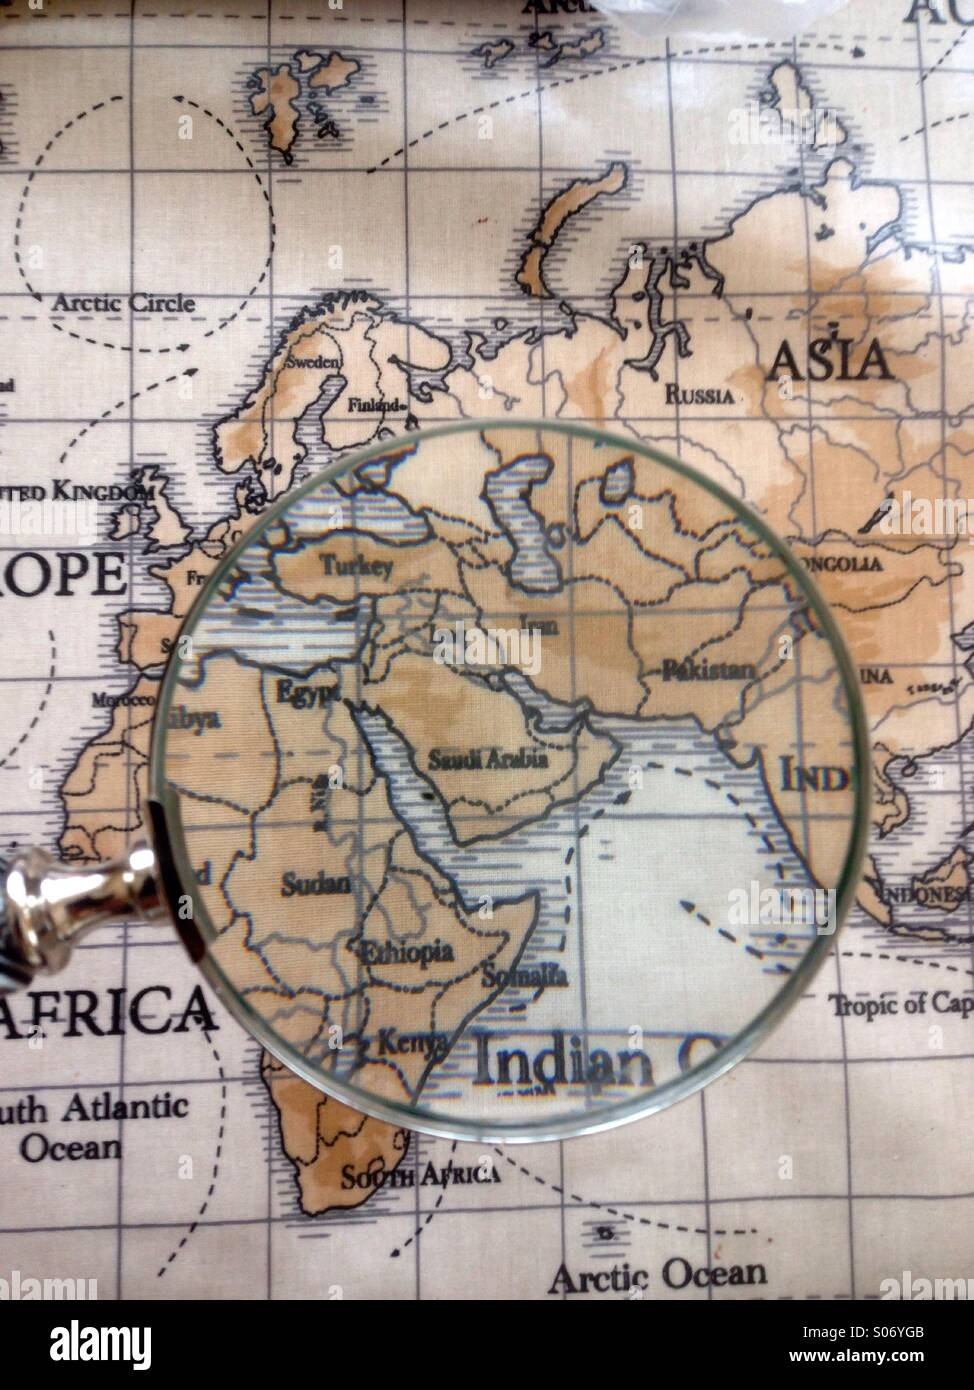 Magnifying glass magnifying a world map - Stock Image